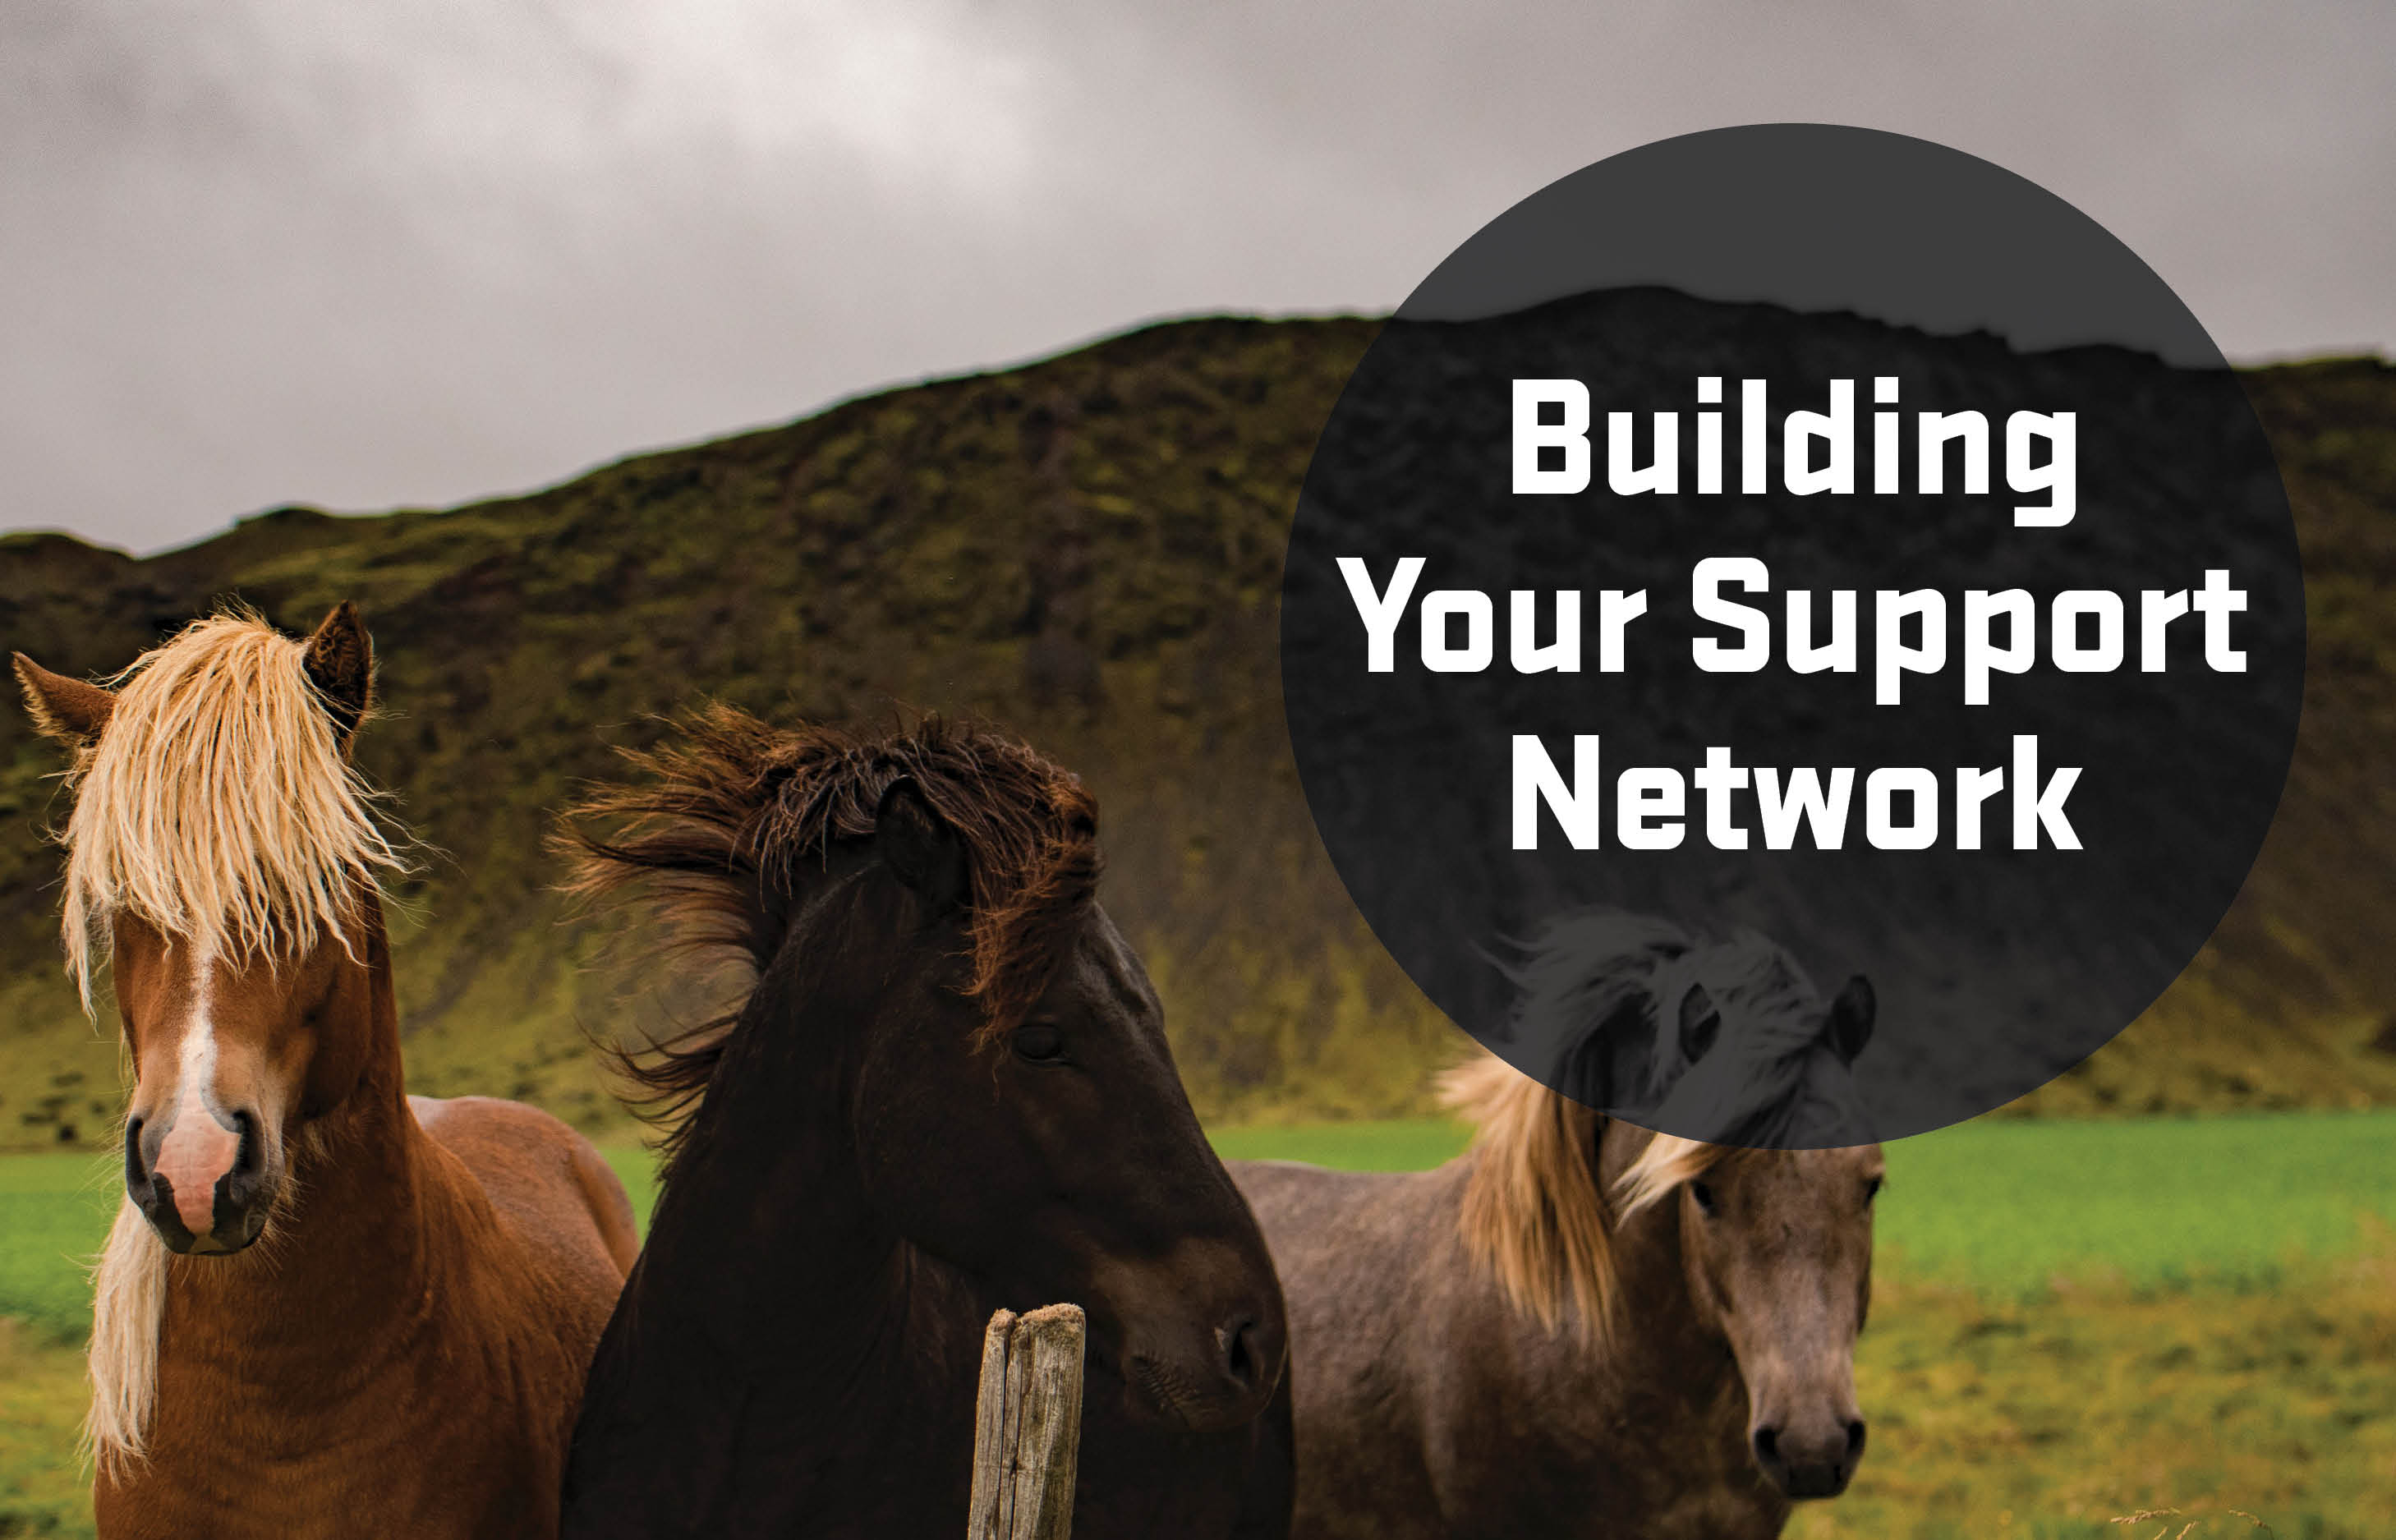 Building Your Support Network